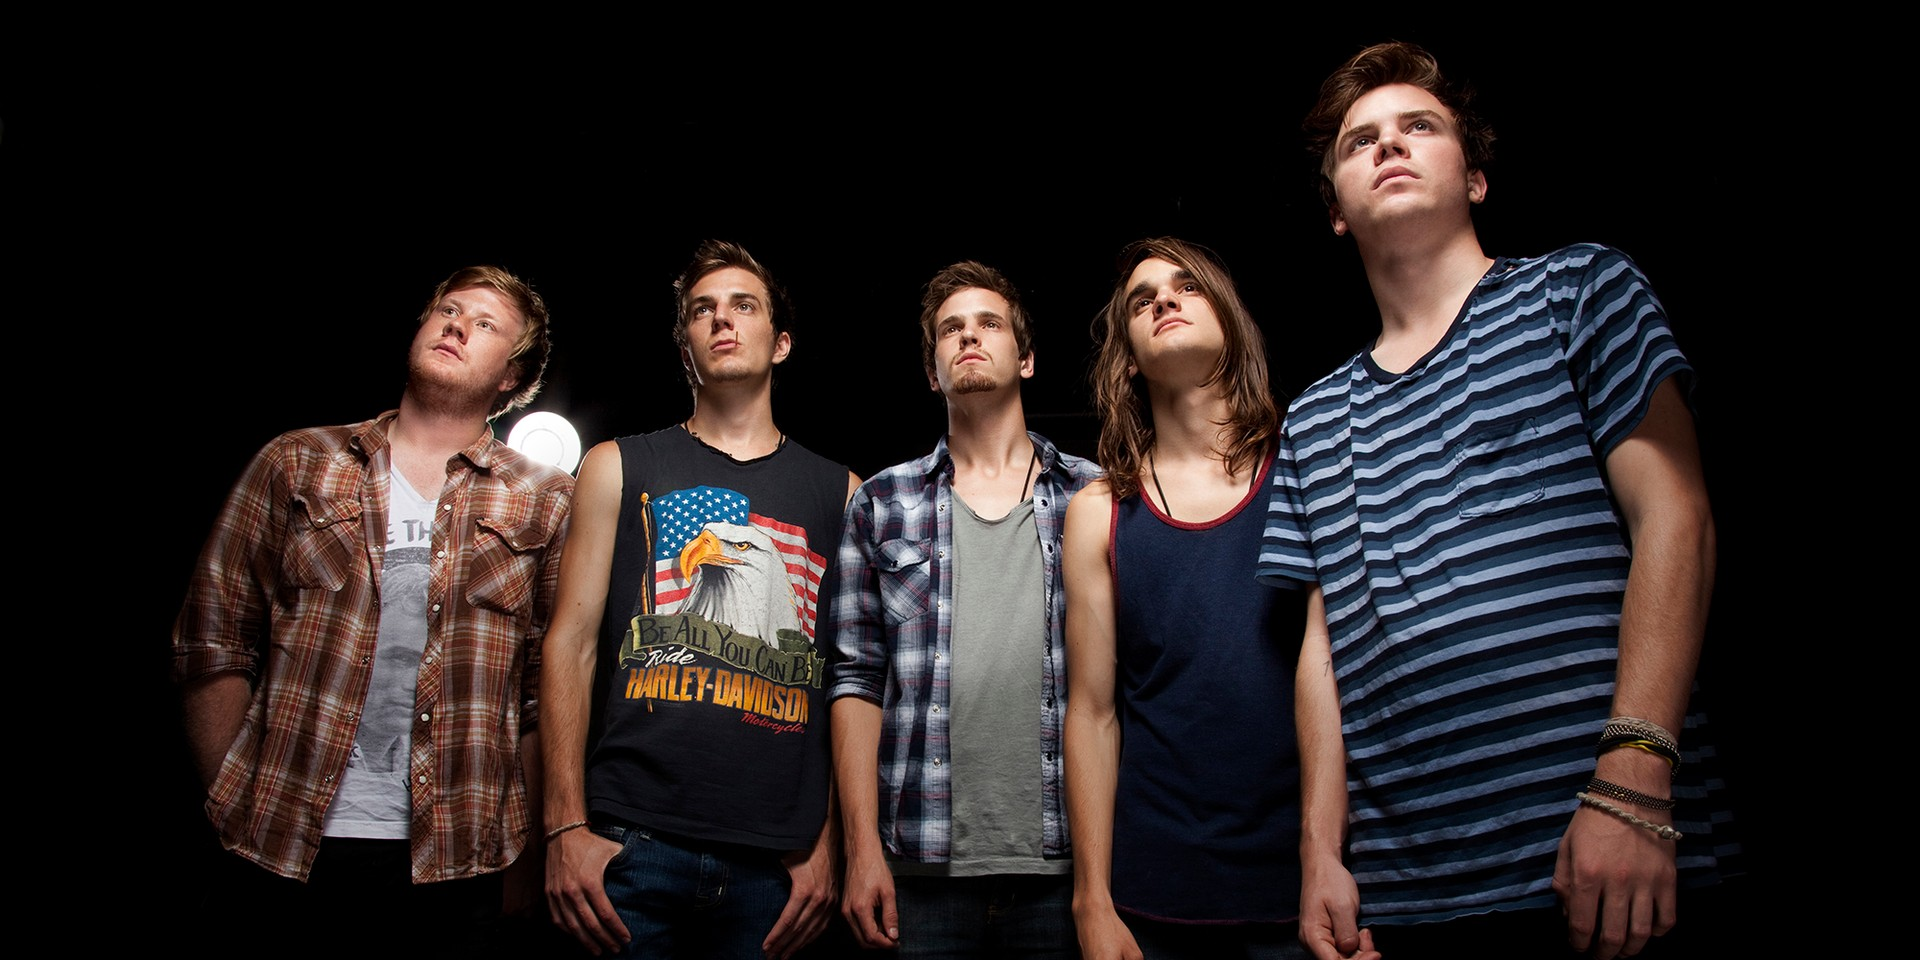 The Maine to return to Singapore